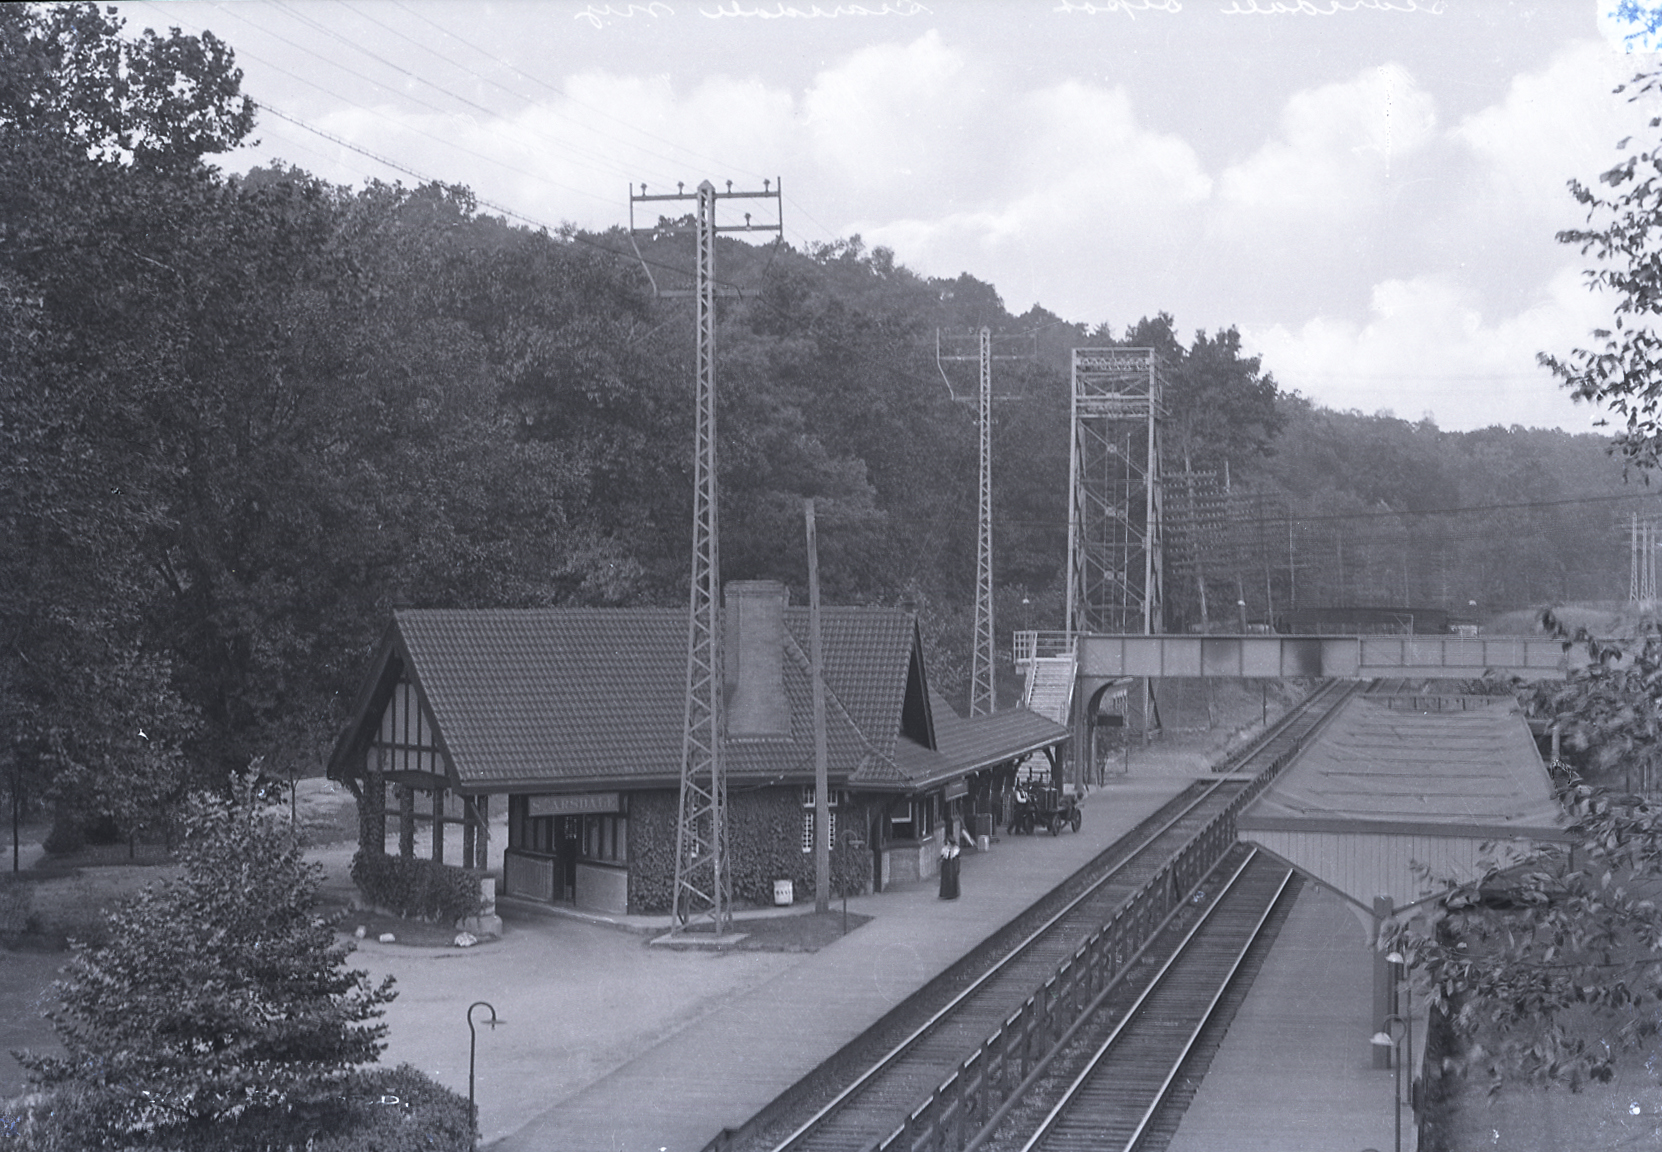 Scarsdale Railroad Station in the early 20th century.